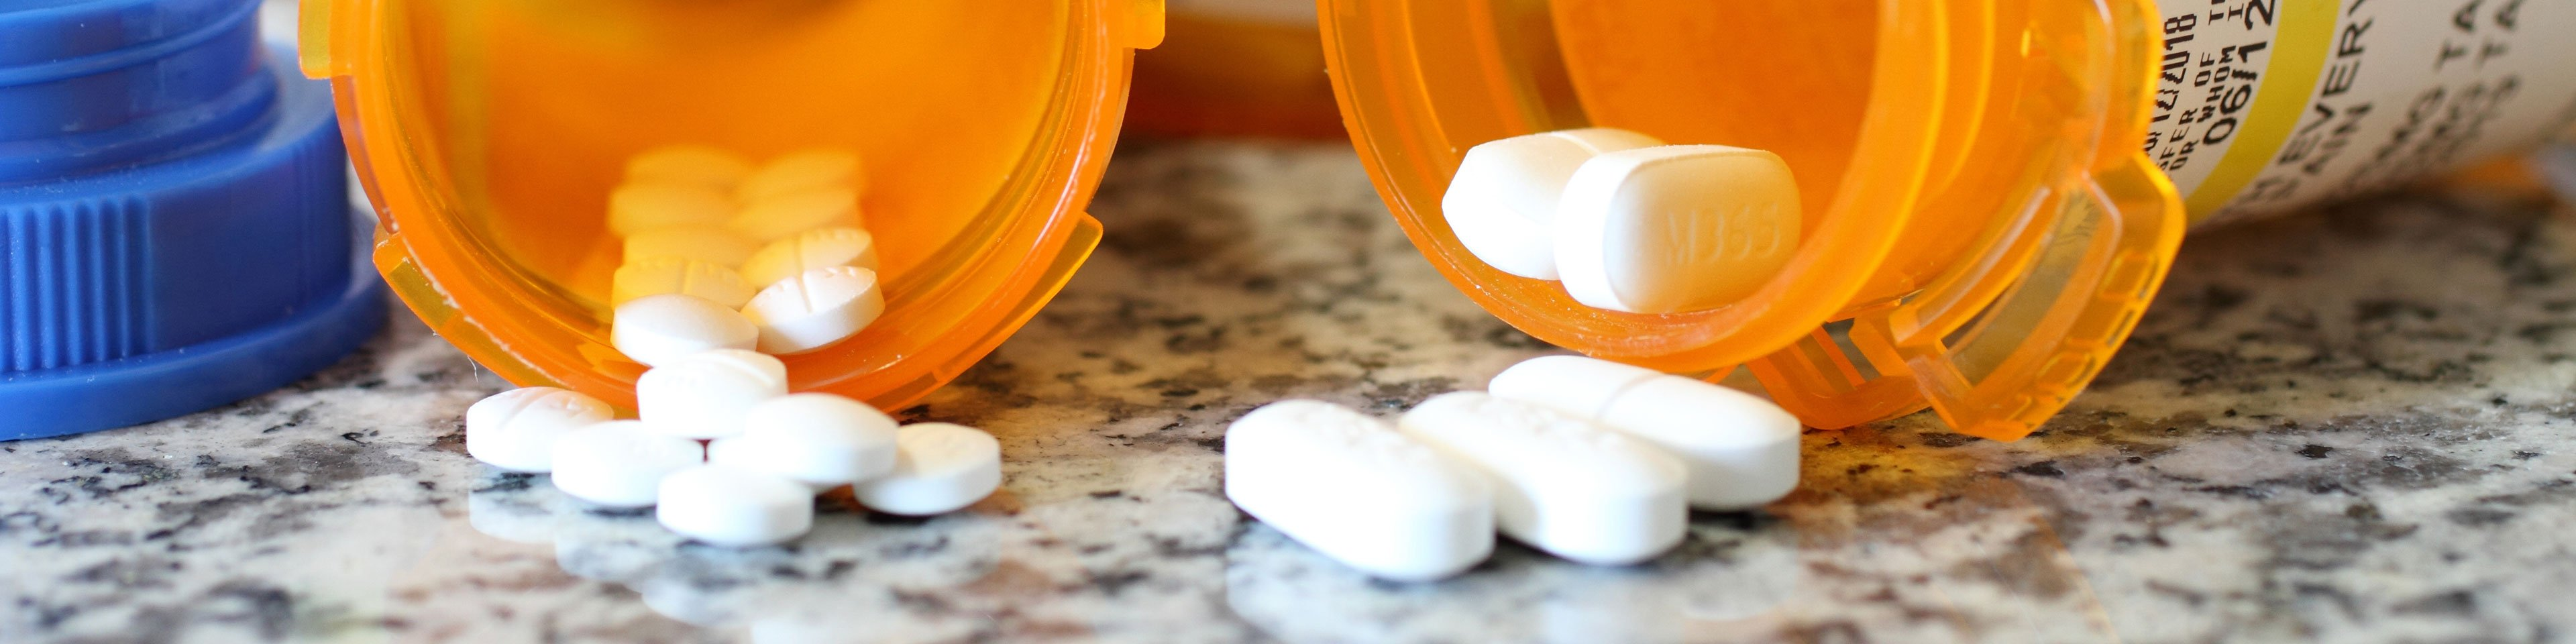 Combating the Opioid Epidemic